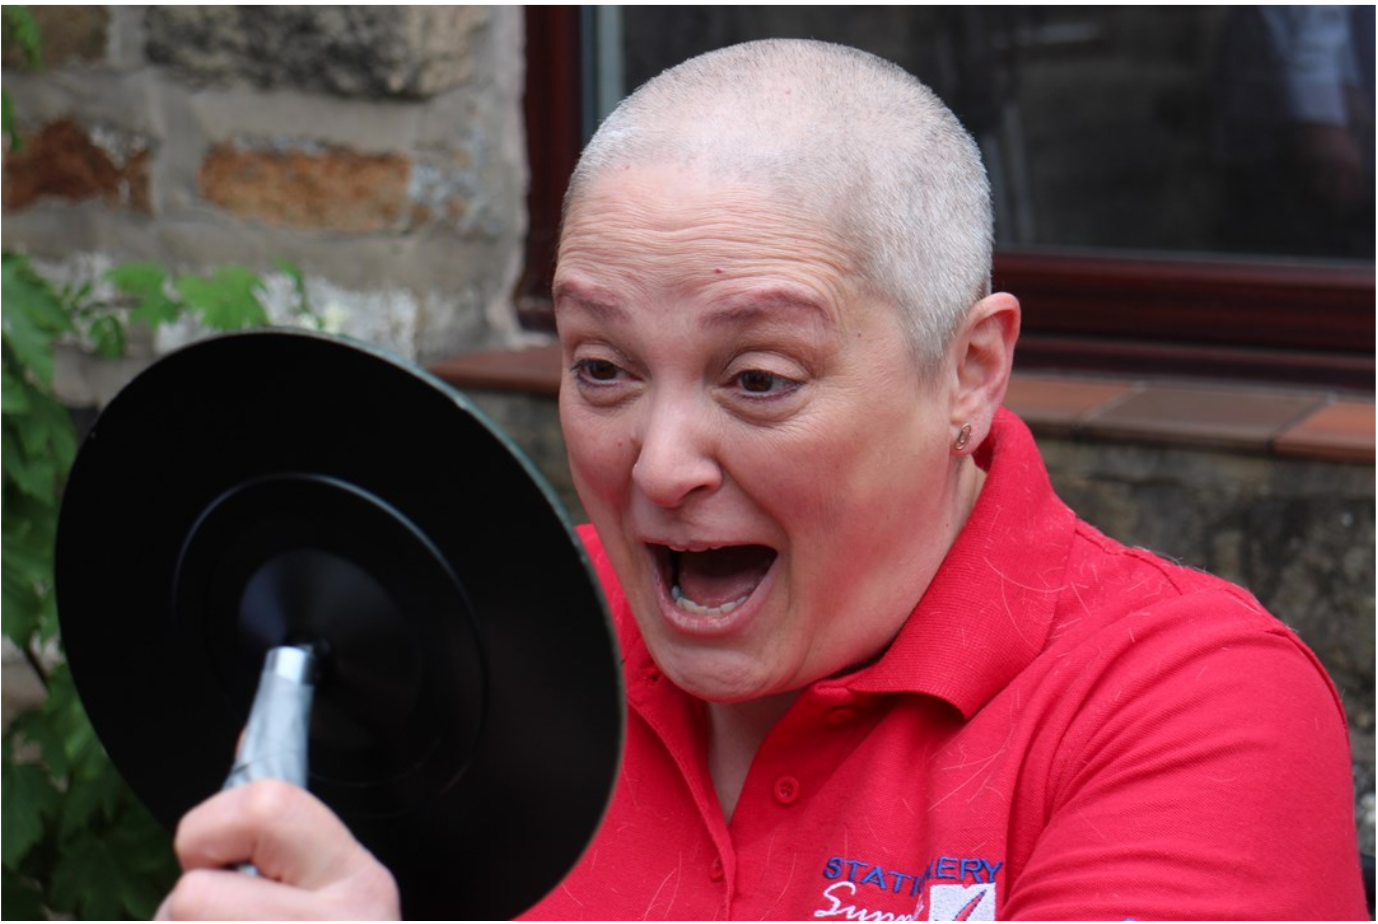 Above: Sarah Laker of Stationery Supplies even shaved her head for charity last summer!